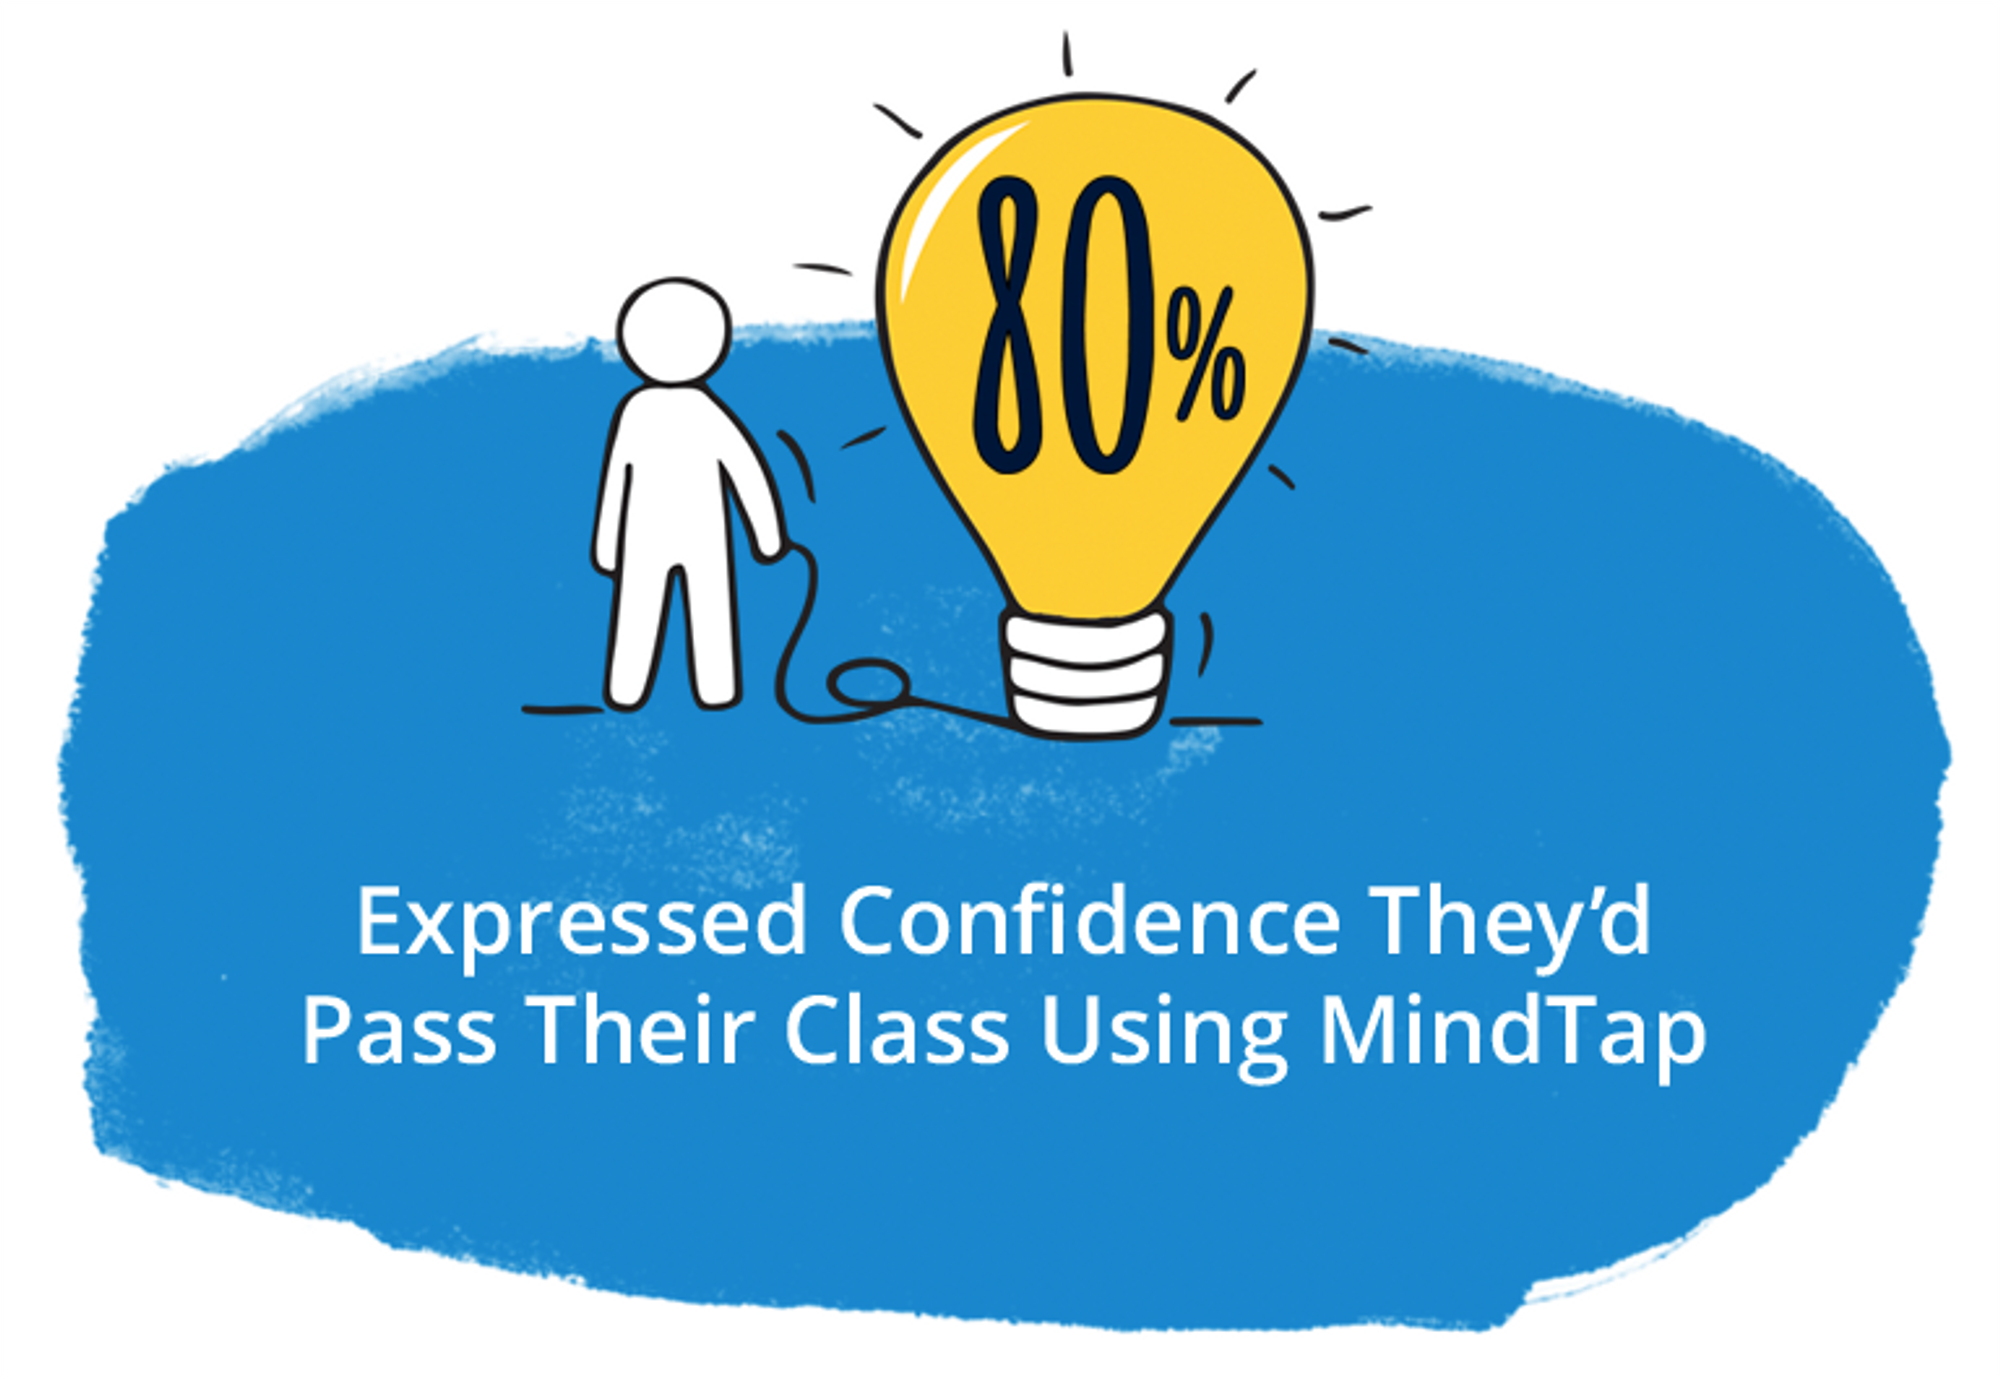 80% Expressed confidence they'd pass their class using MindTap